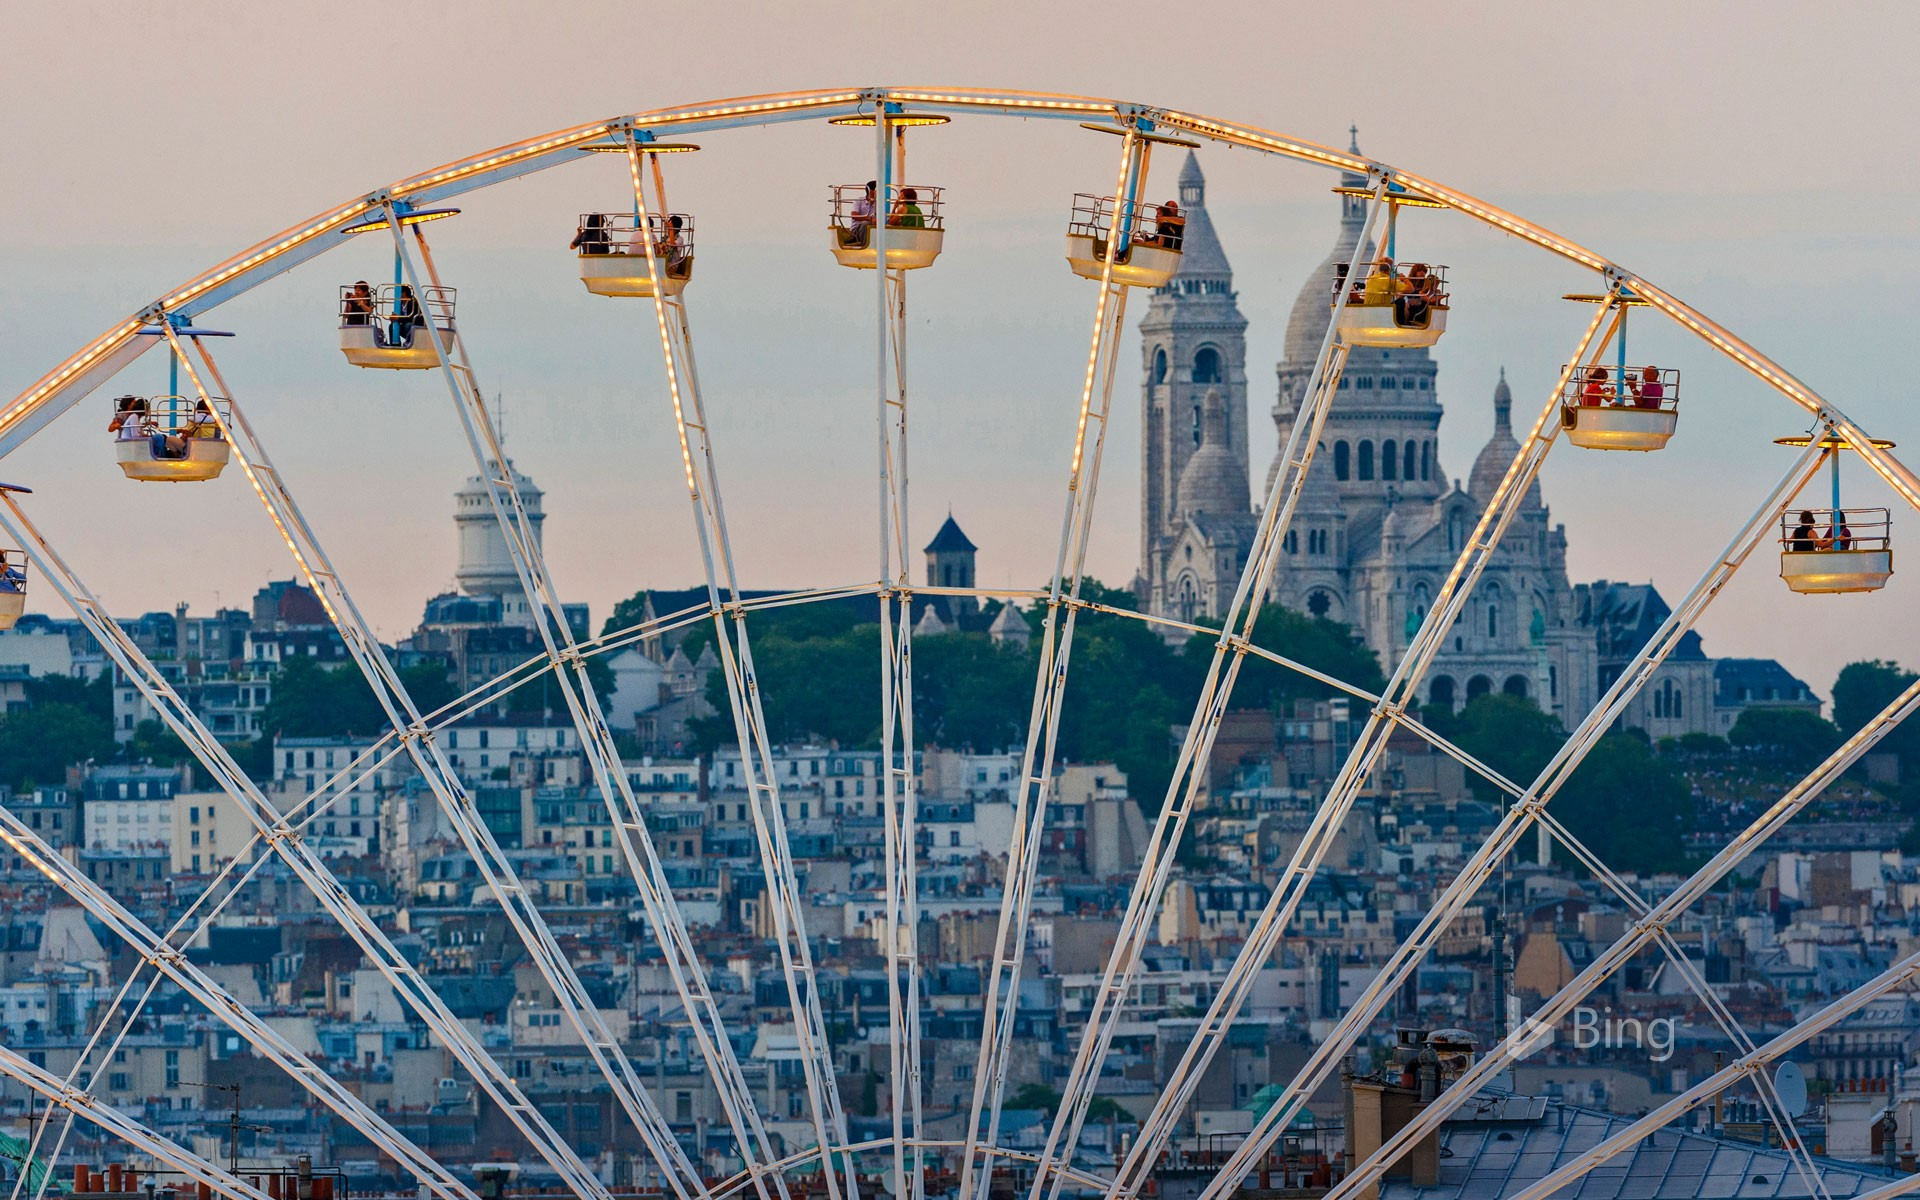 Ferris wheel in the Tuileries Garden in Paris, France